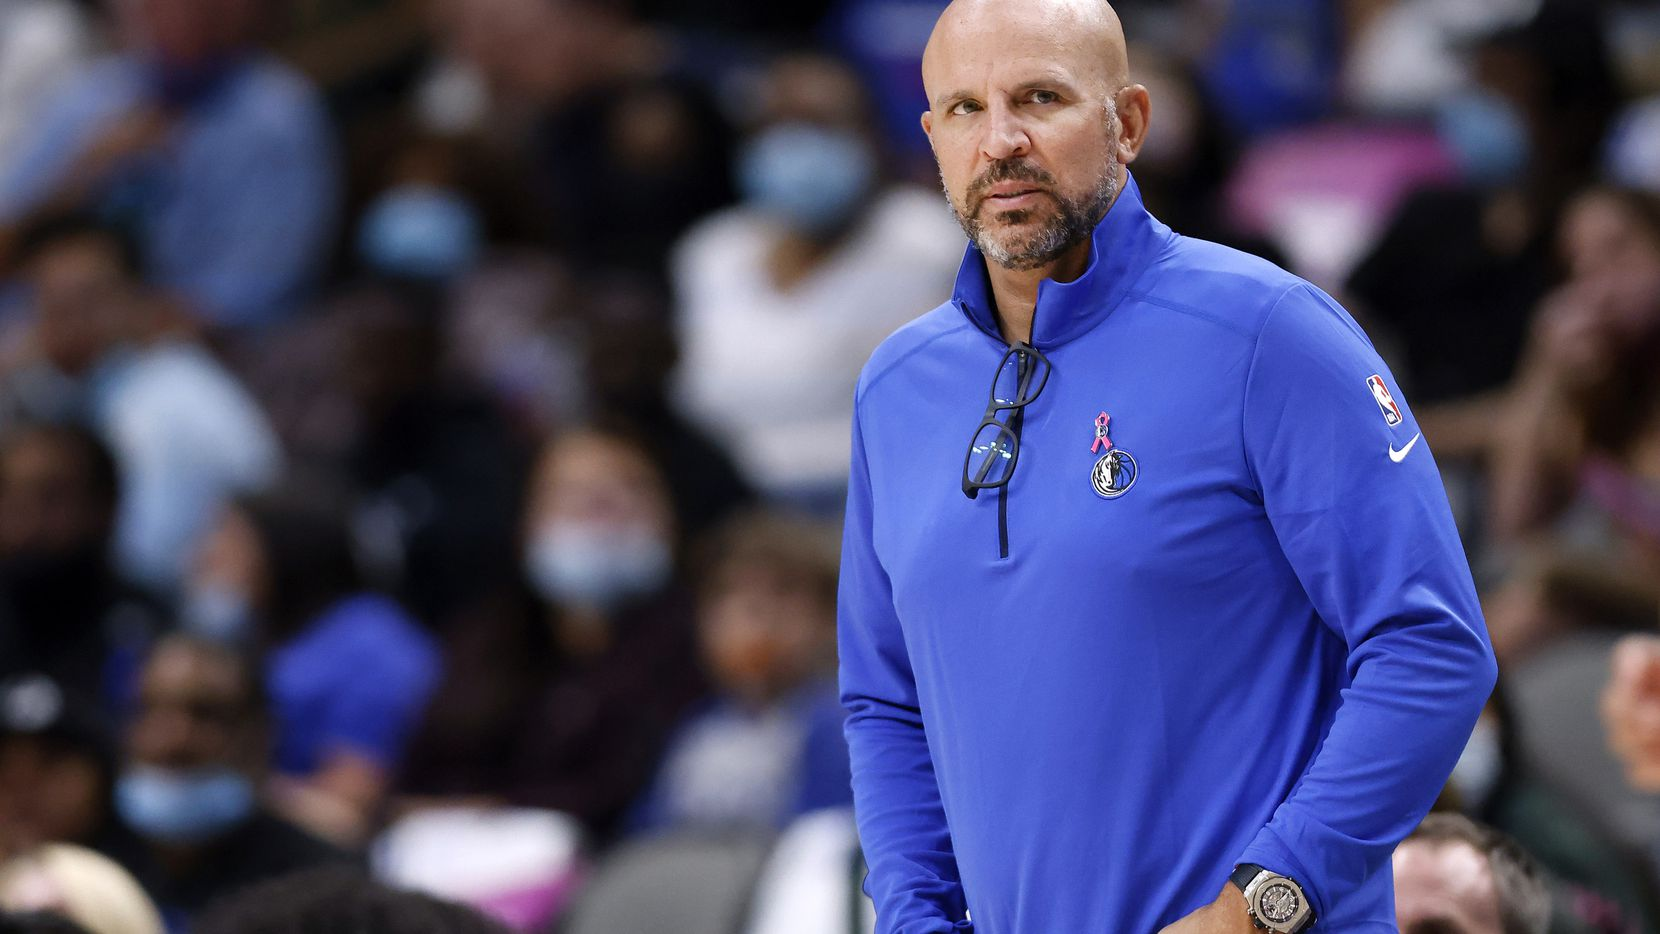 Dallas Mavericks head coach Jason Kidd watches his team face the Utah Jazz in the second half at the American Airlines Center in Dallas, Wednesday, October 6, 2021. The Mavericks defeated the Jazz, 111-101.